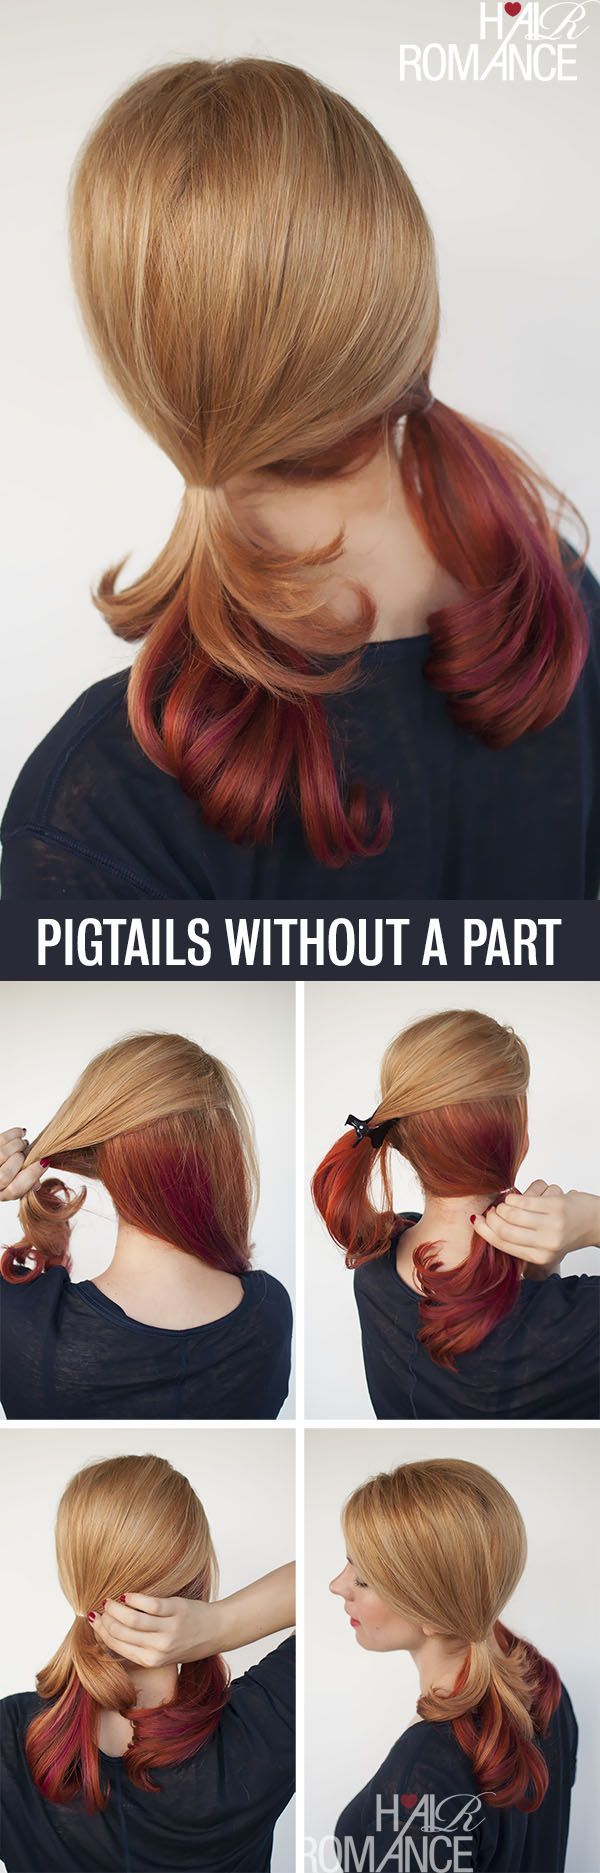 how to wear pigtails without a part line (I'm also diggin the color!!)